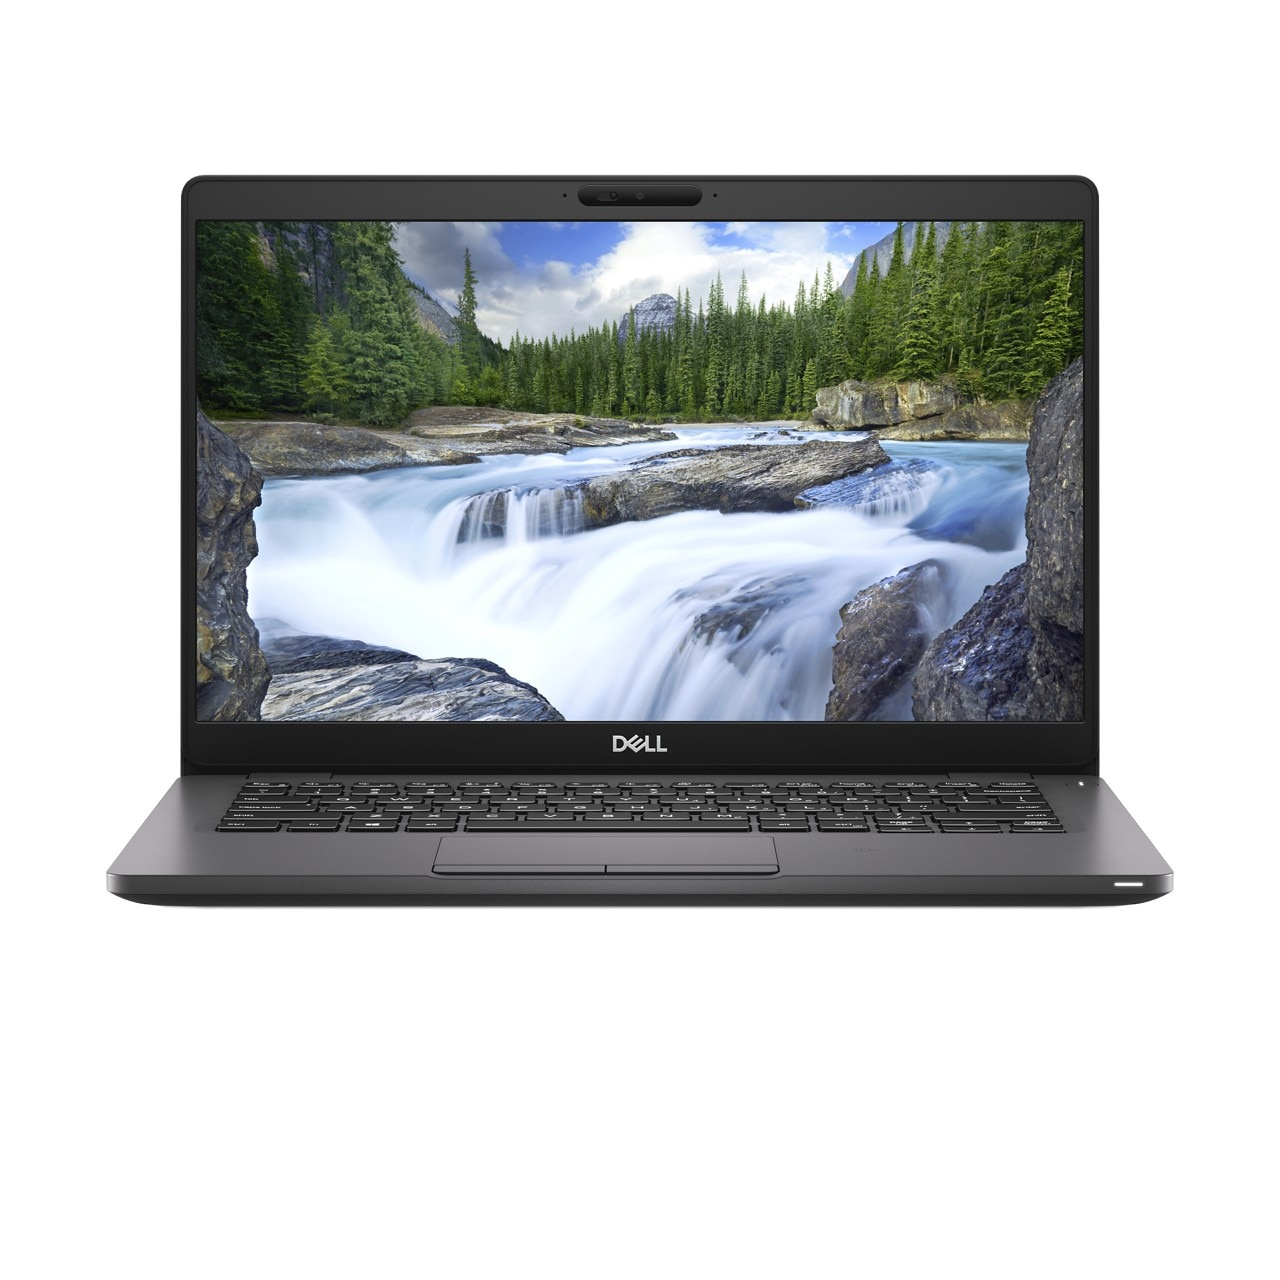 Latitude 13 - 5300 Laptop